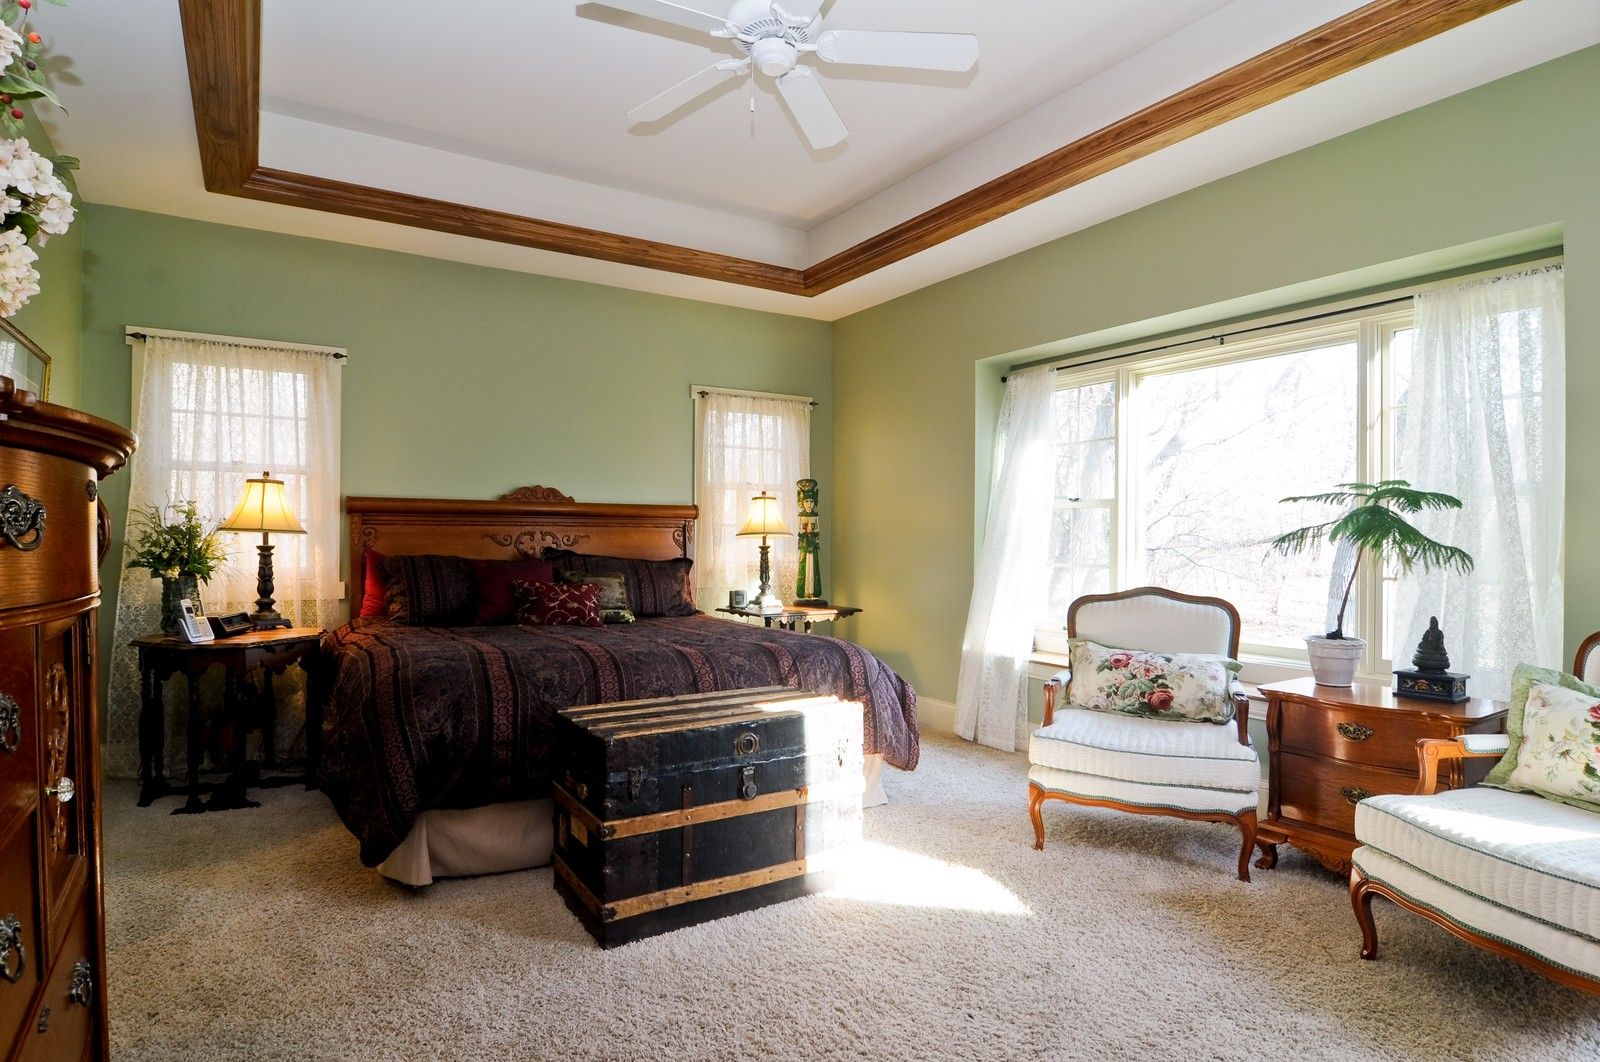 Real Estate Photography - 7420 S Rawson Bridge, Cary, IL, 60013 - Master Bedroom